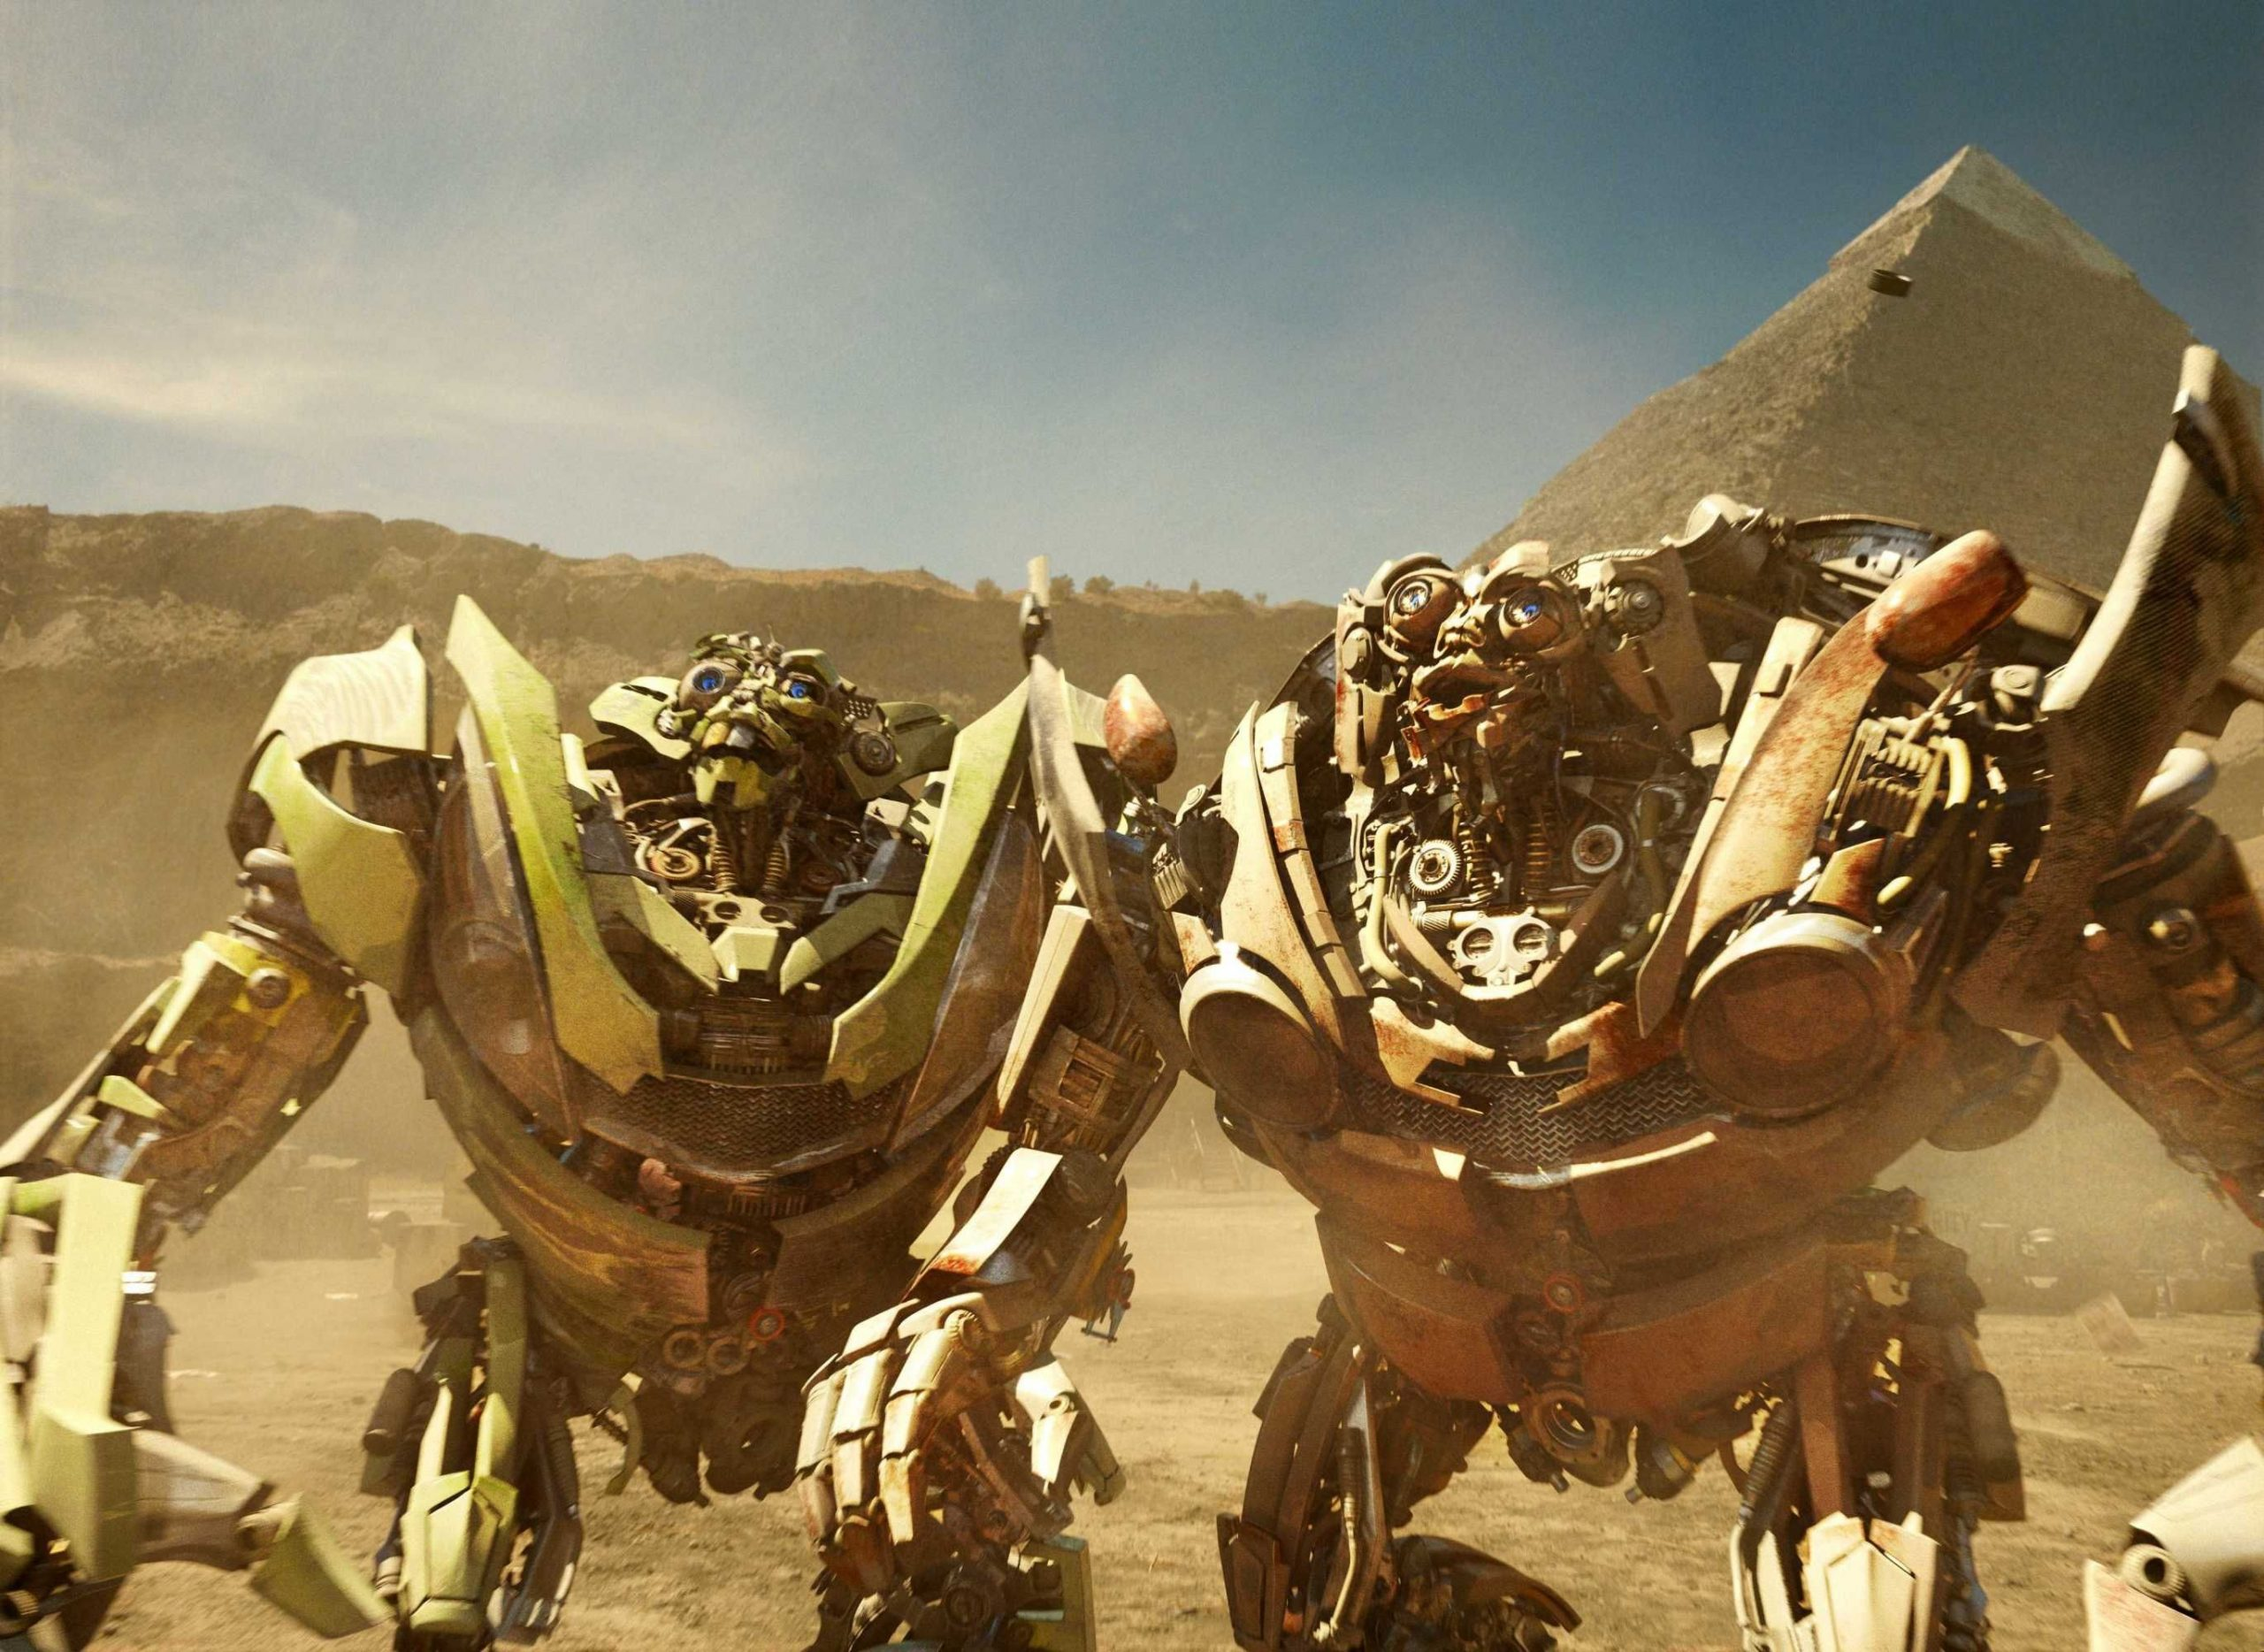 def660ee6669d8c1fe1f19a026fdbbfb scaled The Best (And Worst) Movie Robots